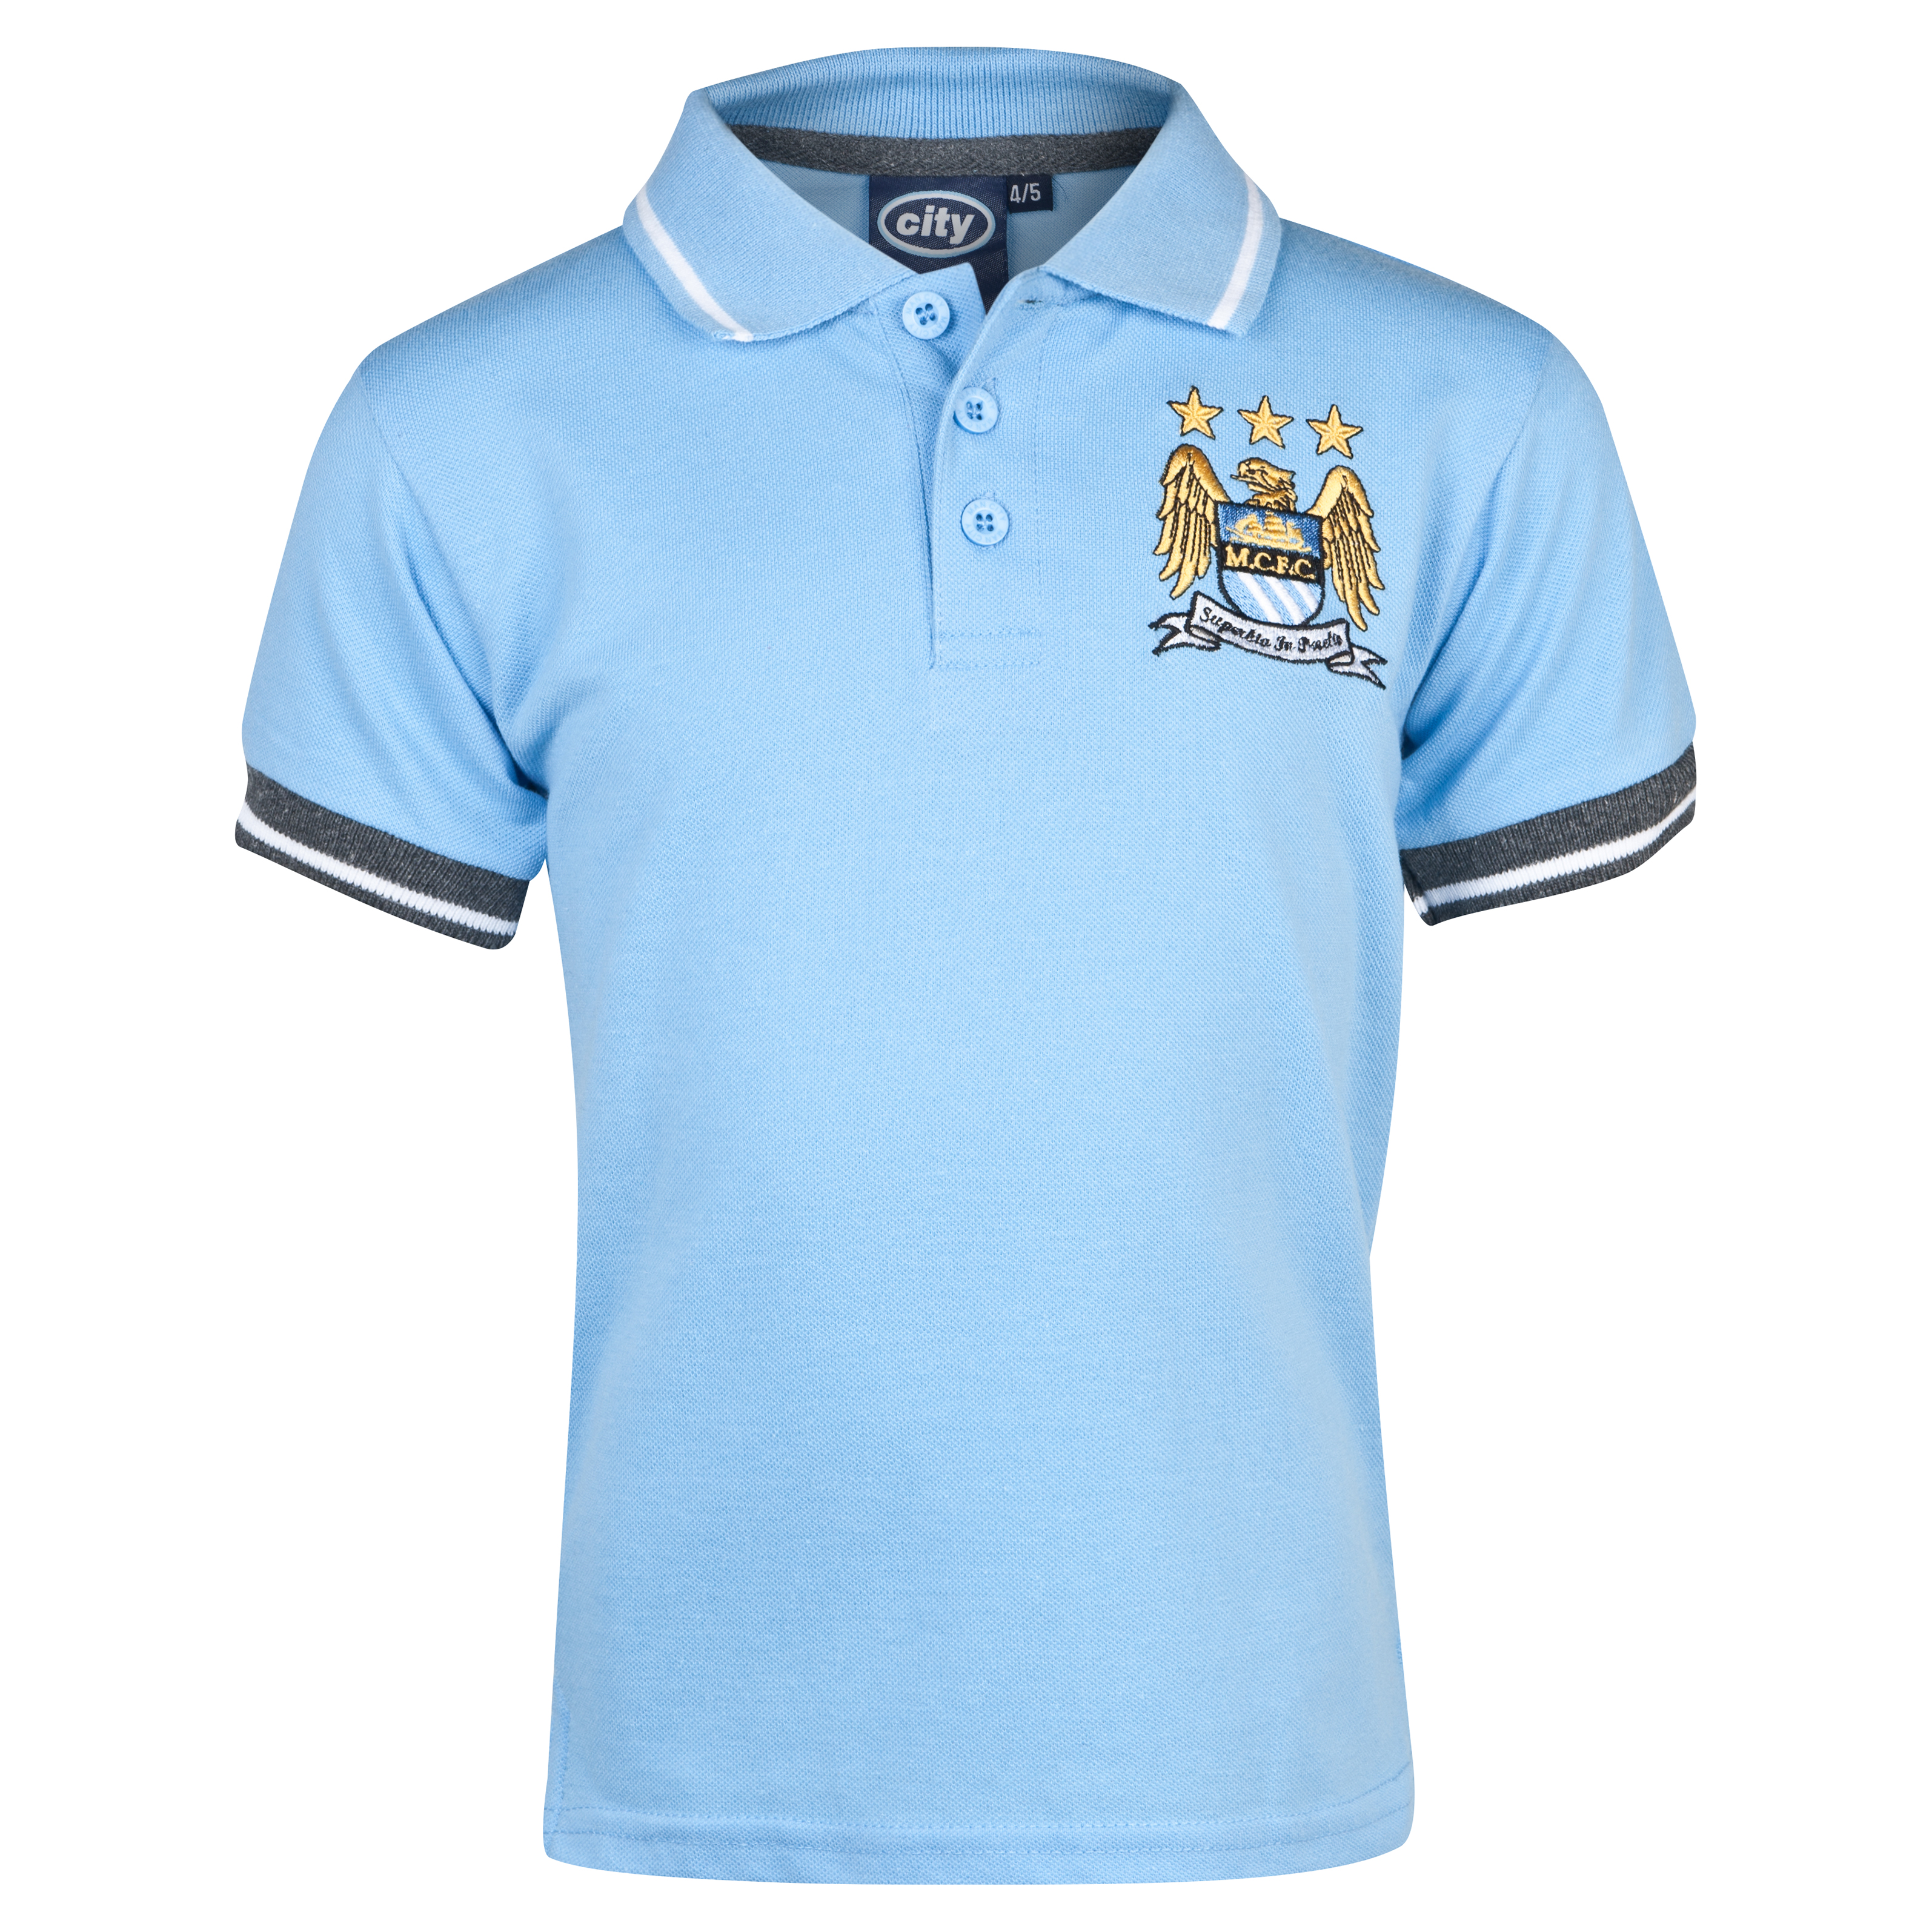 Manchester City Essentials Tour Polo Shirt - Infant Boys Lt Blue